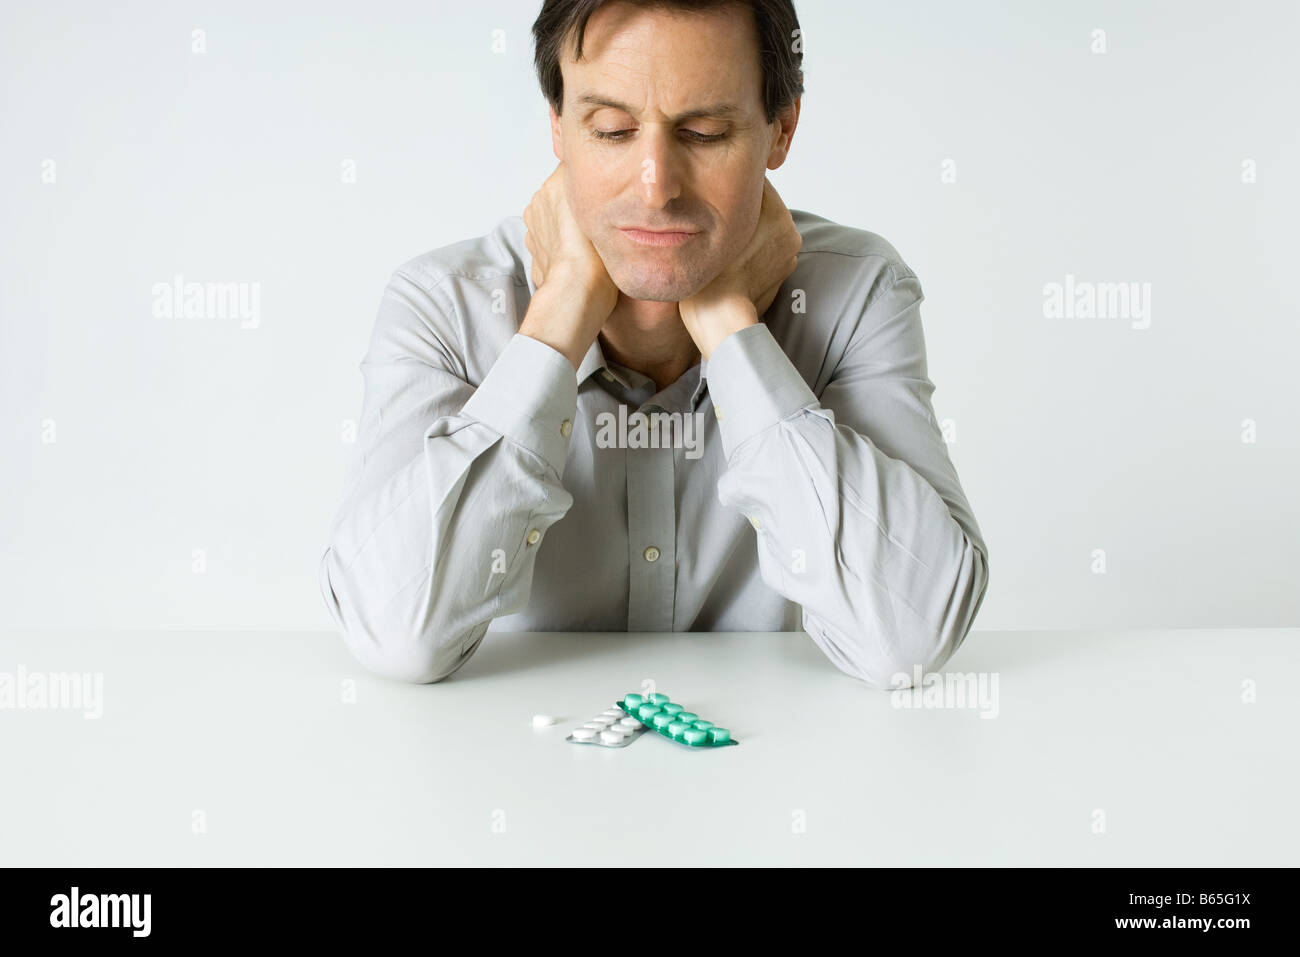 Man sitting next to pills, holding neck, looking down - Stock Image